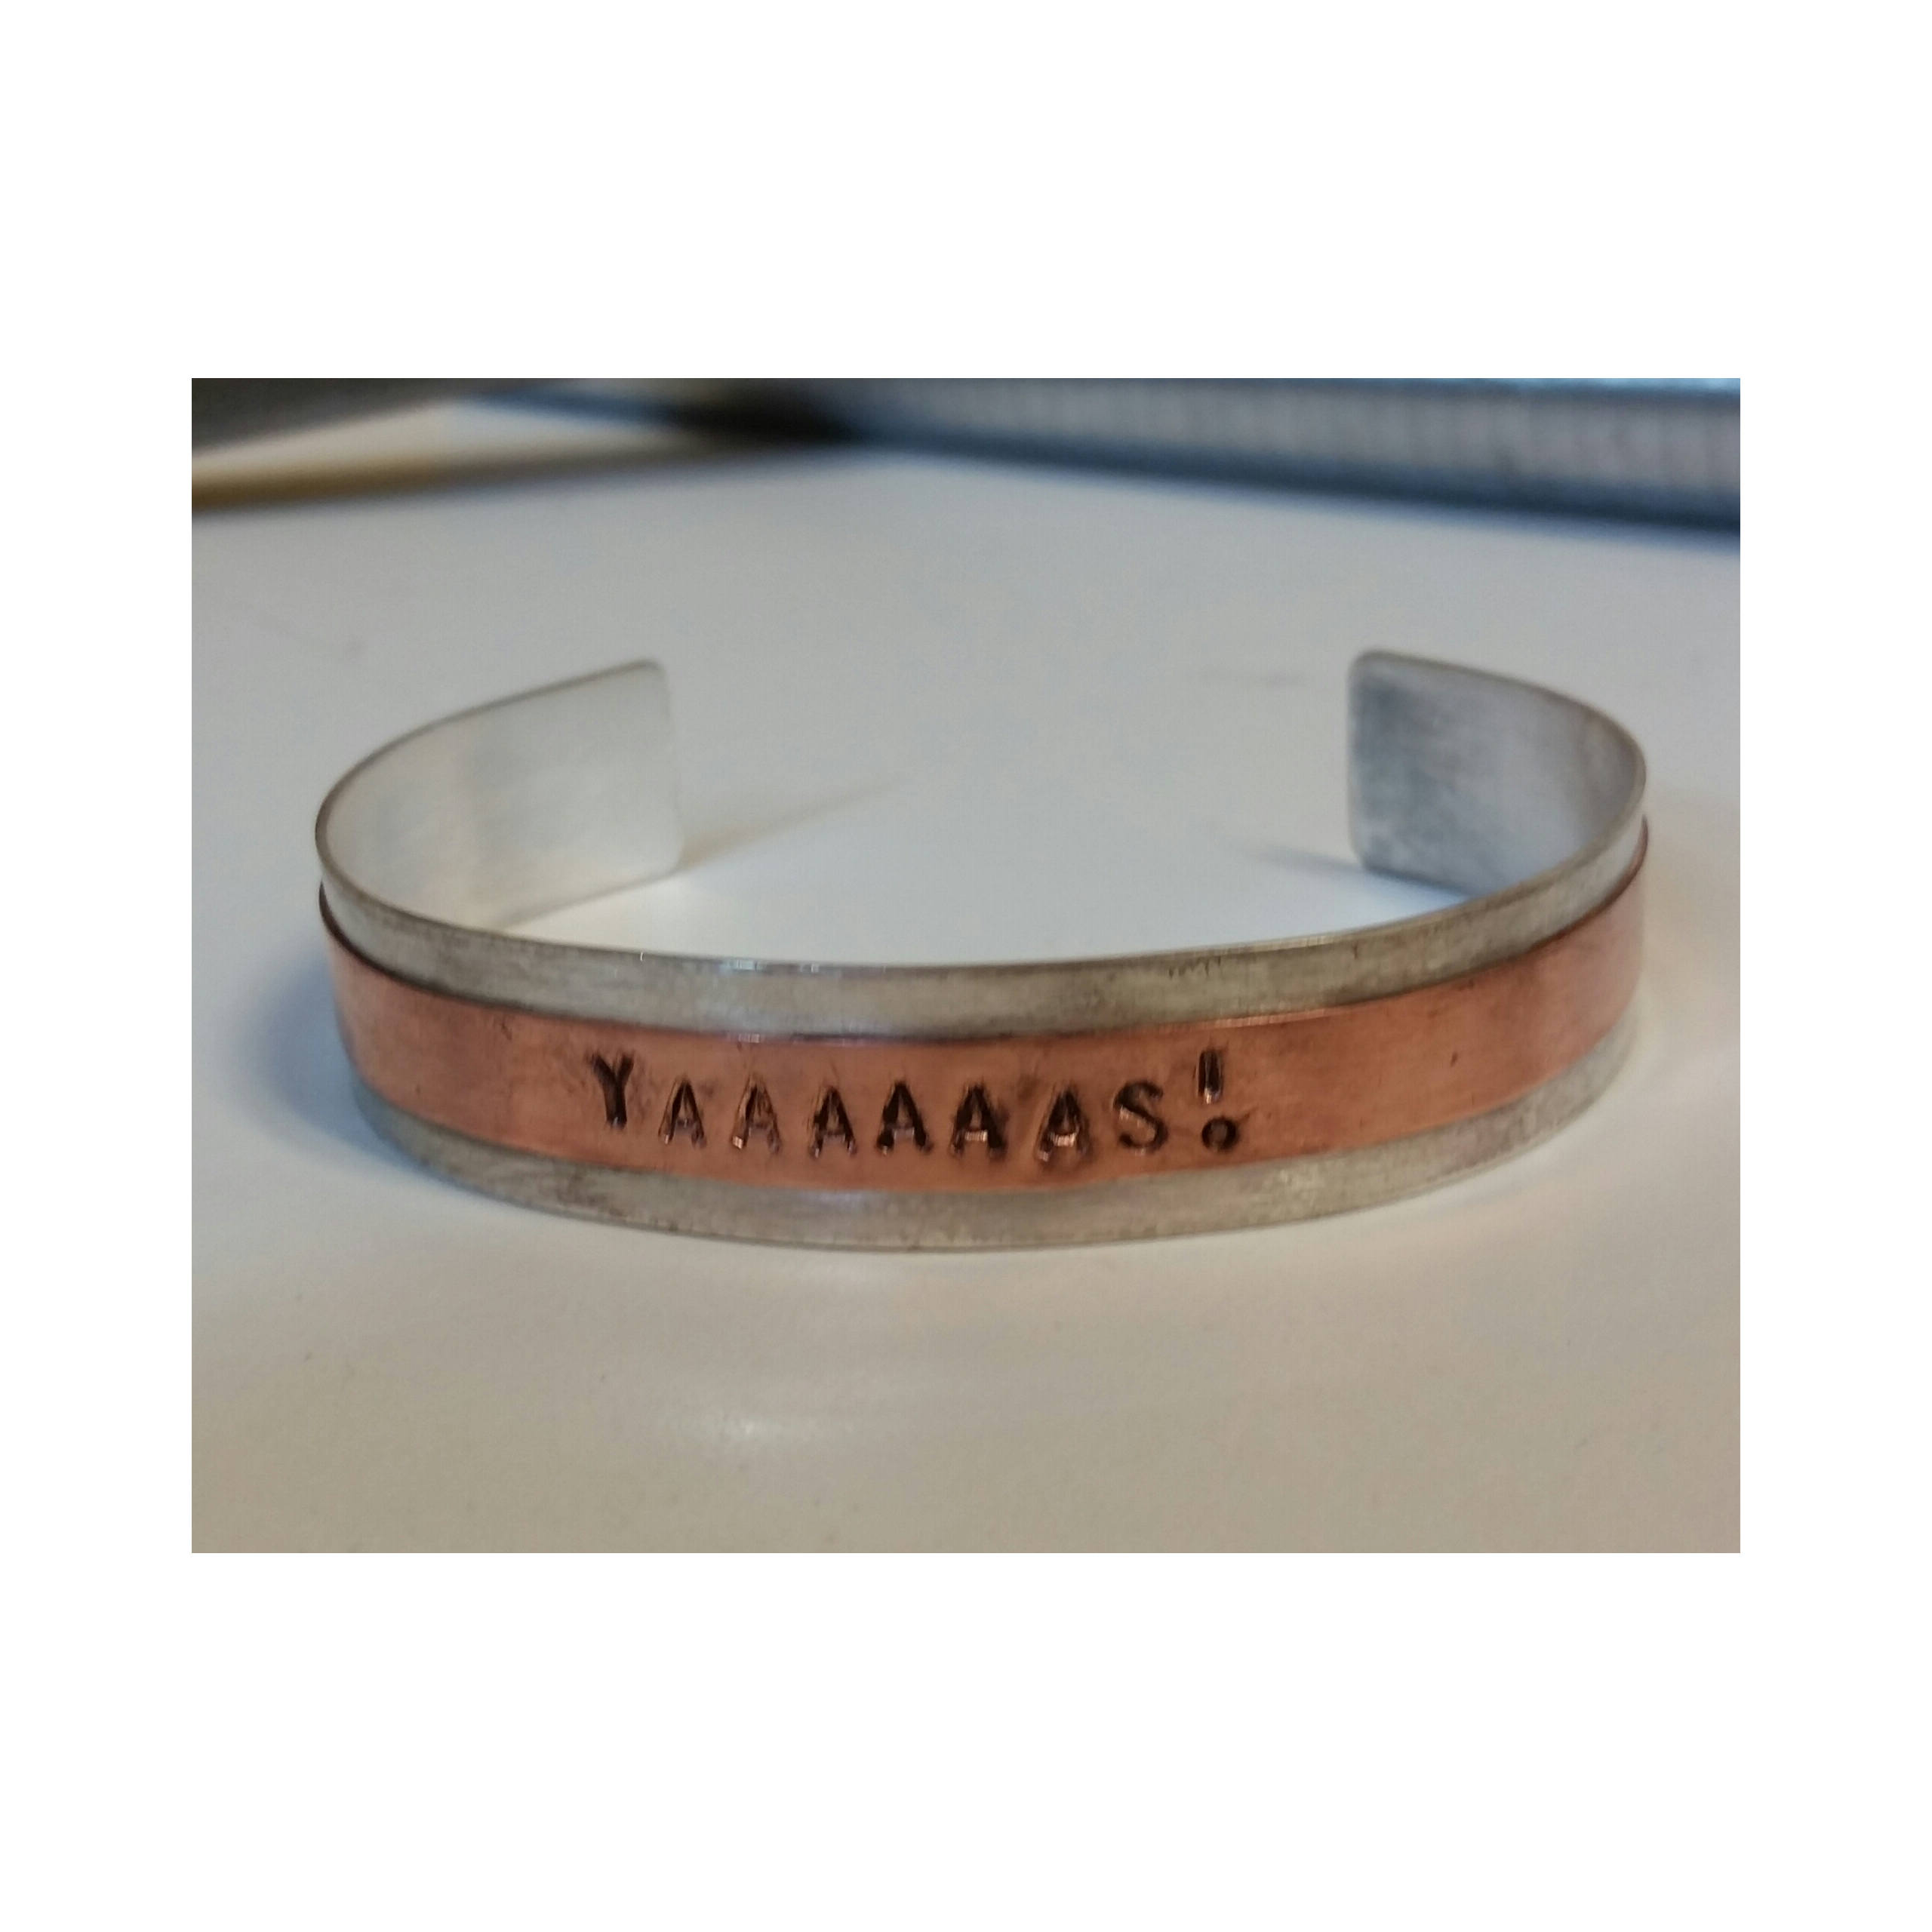 new you help blog year tagged img ring how in blogs and articles can concert the bracelet com wristbands